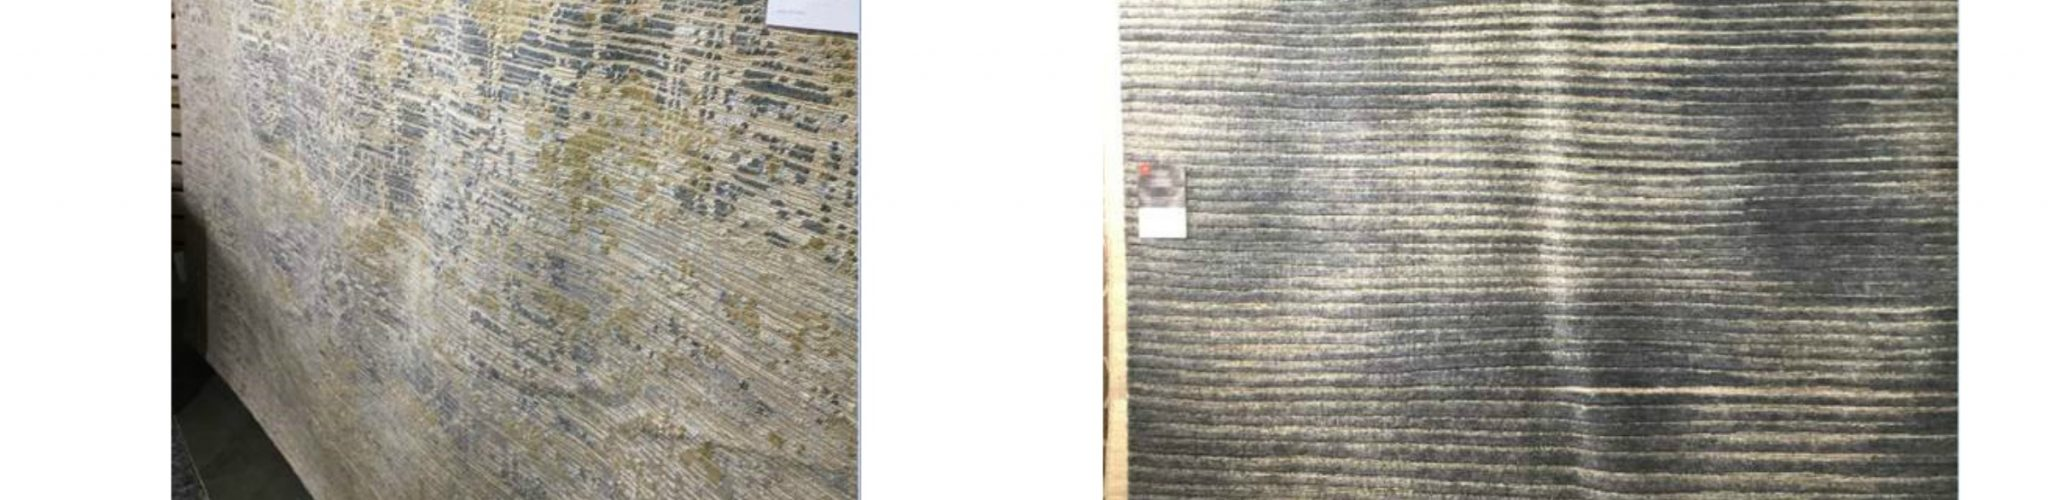 Rug Collage 5